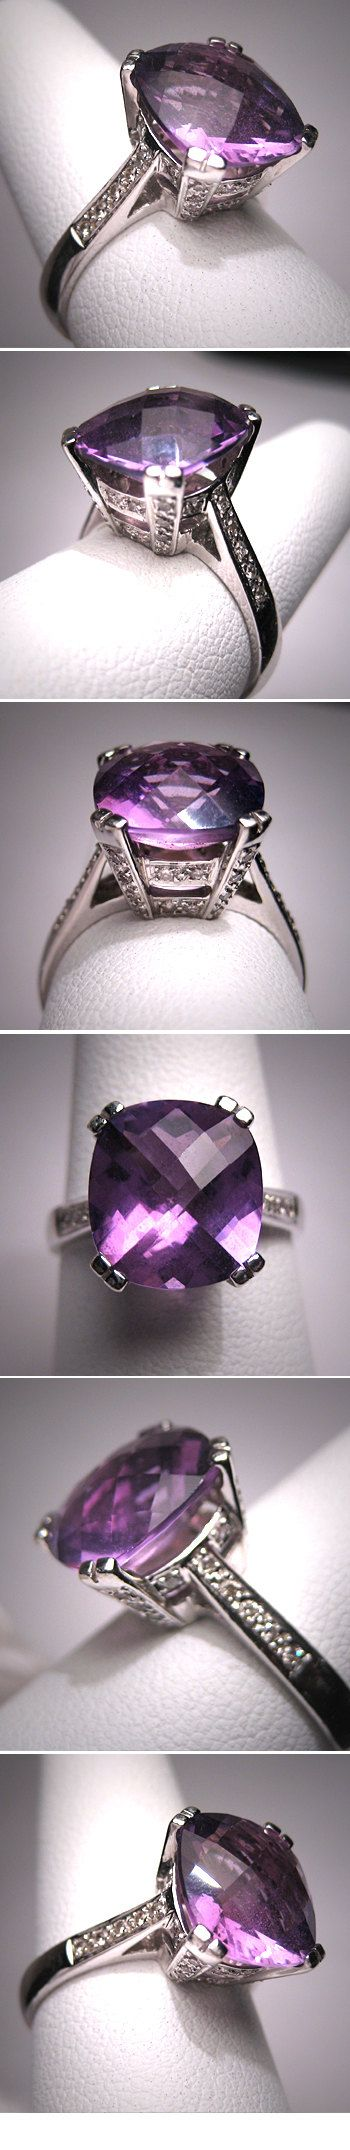 Vintage Amethyst Diamond Wedding Ring White by AawsombleiJewelry